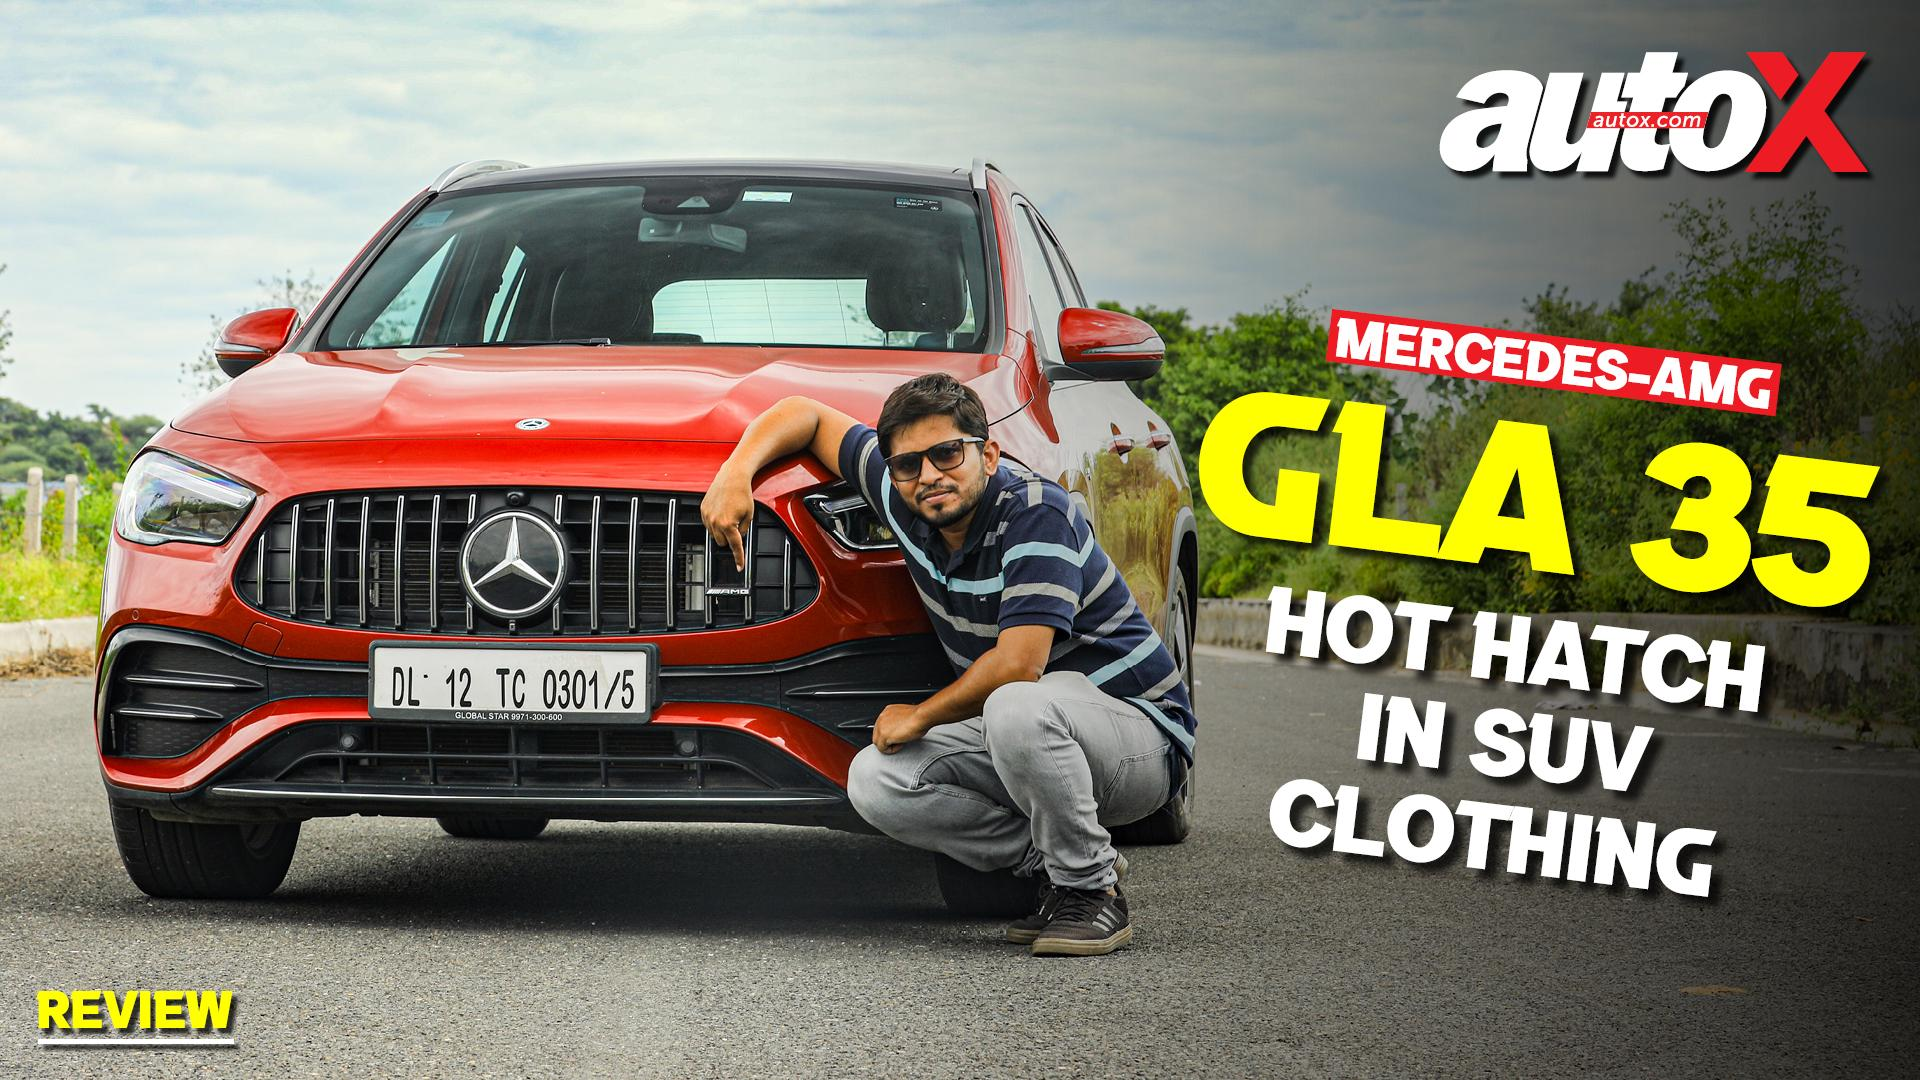 2021 Mercedes-AMG GLA 35: Hot hatch in SUV clothing | Review | autoX